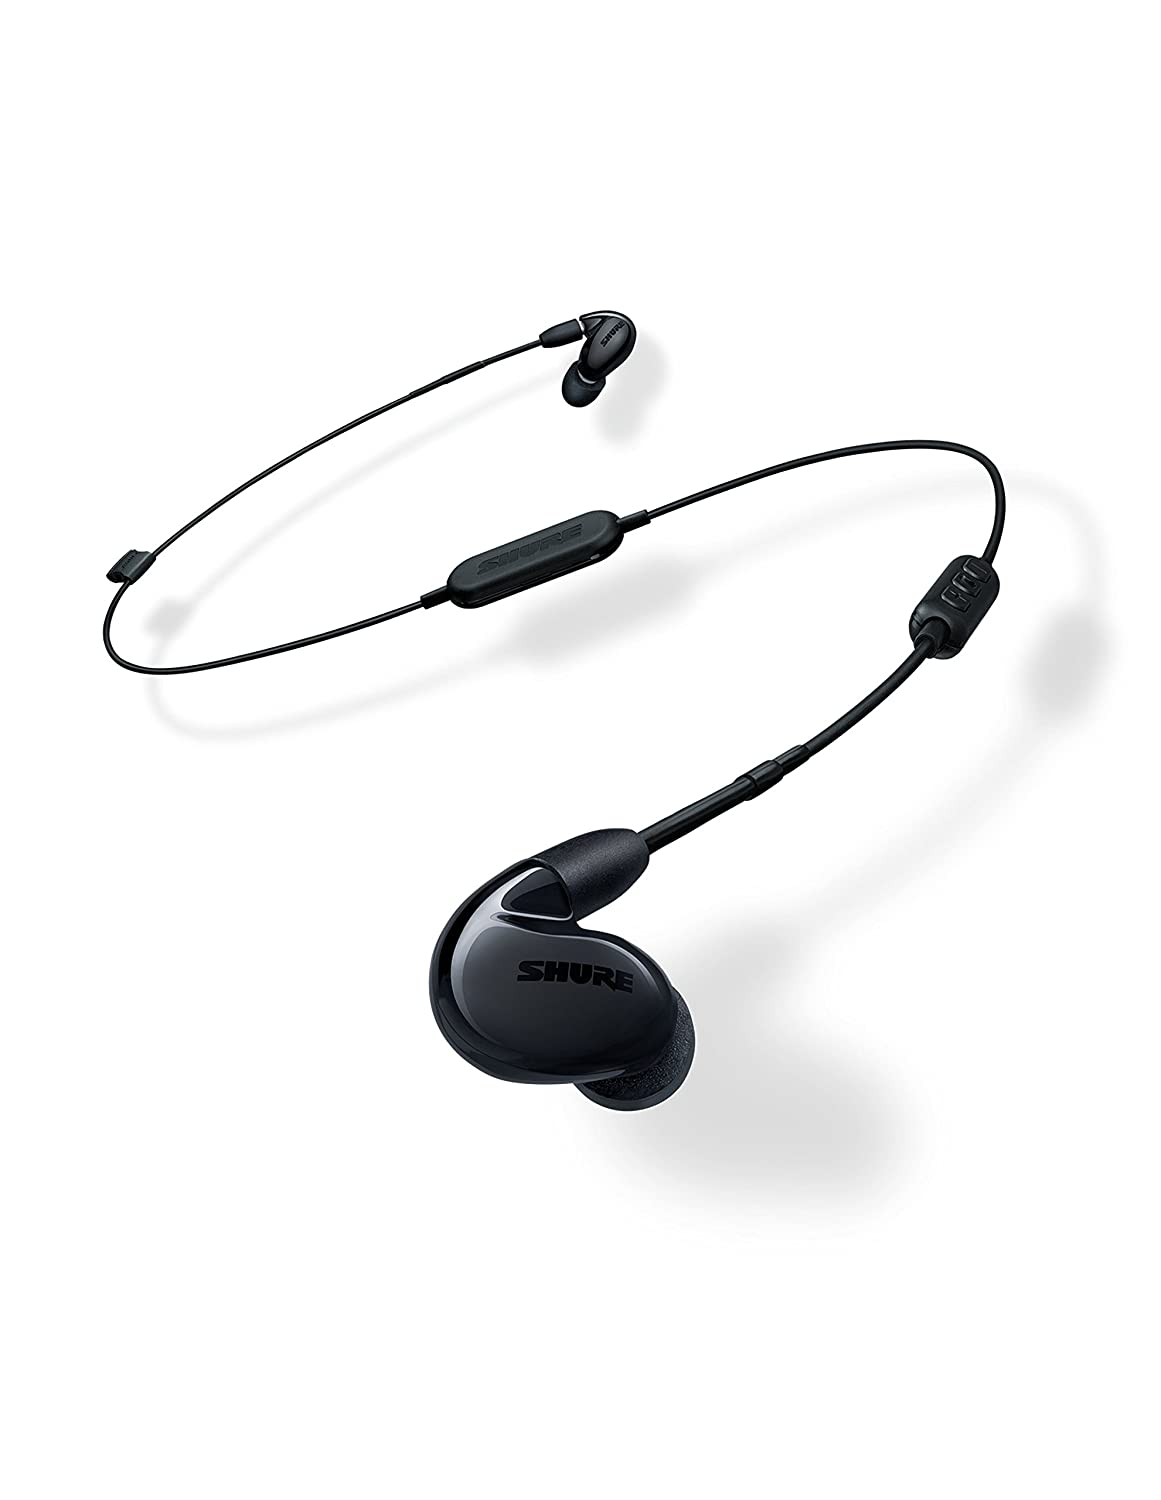 Shure SE846-K+BT1 Wireless Sound Isolating Earphones With